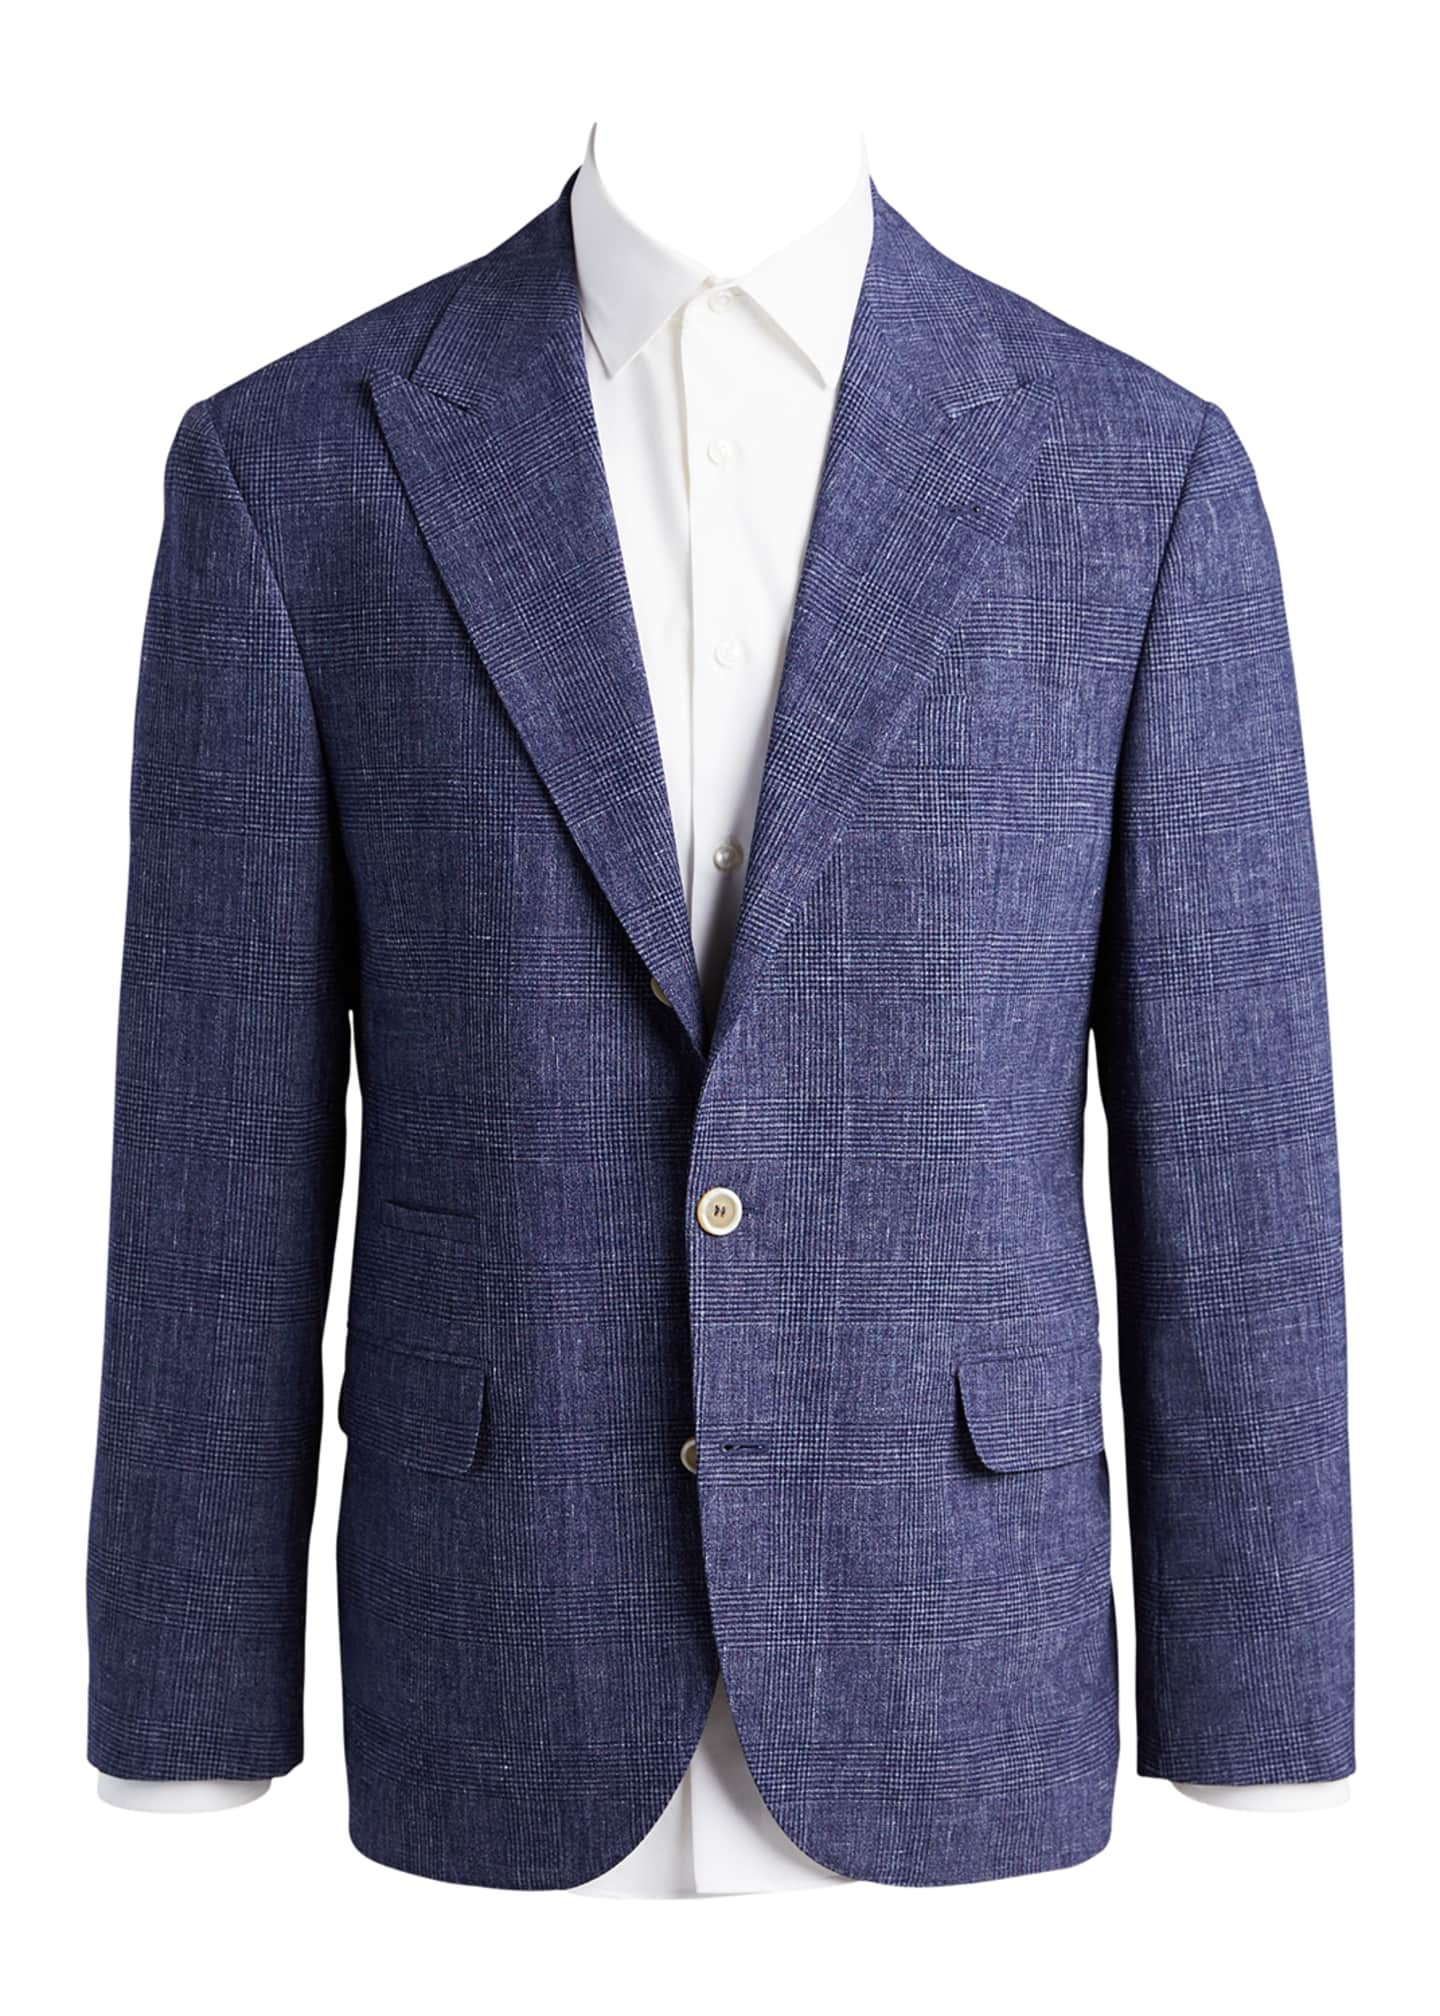 Image 5 of 5: Men's Glen Plaid Peak Lapel Two-Piece Suit